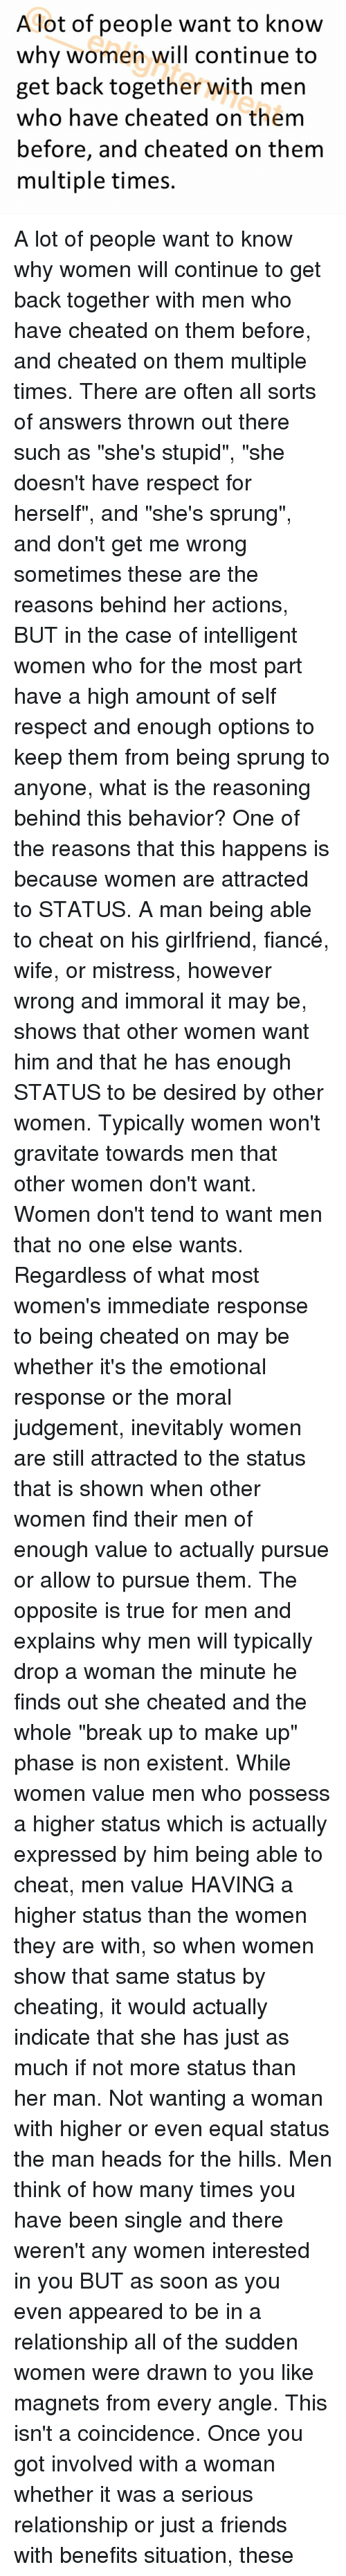 """Cheating Men: A lot of people want to know  why women will continue to  get back together with men  who have cheated on them  before, and cheated on them  multiple times. A lot of people want to know why women will continue to get back together with men who have cheated on them before, and cheated on them multiple times. There are often all sorts of answers thrown out there such as """"she's stupid"""", """"she doesn't have respect for herself"""", and """"she's sprung"""", and don't get me wrong sometimes these are the reasons behind her actions, BUT in the case of intelligent women who for the most part have a high amount of self respect and enough options to keep them from being sprung to anyone, what is the reasoning behind this behavior? One of the reasons that this happens is because women are attracted to STATUS. A man being able to cheat on his girlfriend, fiancé, wife, or mistress, however wrong and immoral it may be, shows that other women want him and that he has enough STATUS to be desired by other women. Typically women won't gravitate towards men that other women don't want. Women don't tend to want men that no one else wants. Regardless of what most women's immediate response to being cheated on may be whether it's the emotional response or the moral judgement, inevitably women are still attracted to the status that is shown when other women find their men of enough value to actually pursue or allow to pursue them. The opposite is true for men and explains why men will typically drop a woman the minute he finds out she cheated and the whole """"break up to make up"""" phase is non existent. While women value men who possess a higher status which is actually expressed by him being able to cheat, men value HAVING a higher status than the women they are with, so when women show that same status by cheating, it would actually indicate that she has just as much if not more status than her man. Not wanting a woman with higher or even equal status the man heads for the hills. Men t"""